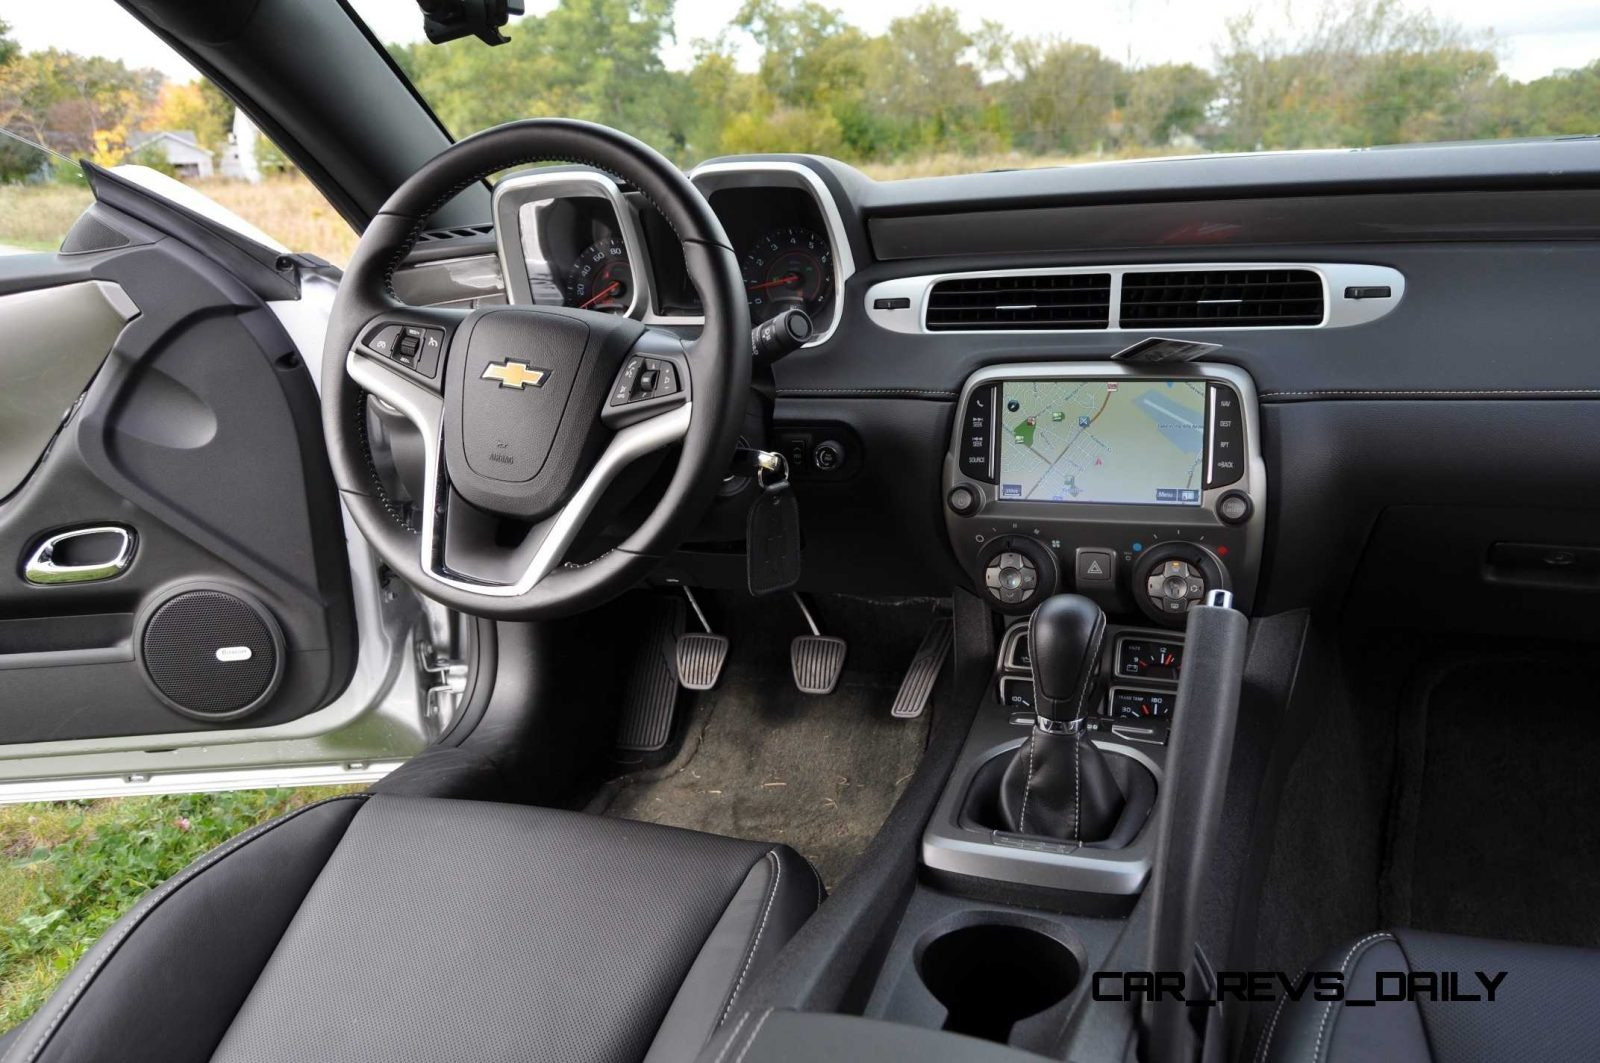 Hd Video Reviews 2014 Chevy Camaro 2lt Rs With New Led Lights And Active Exhaust